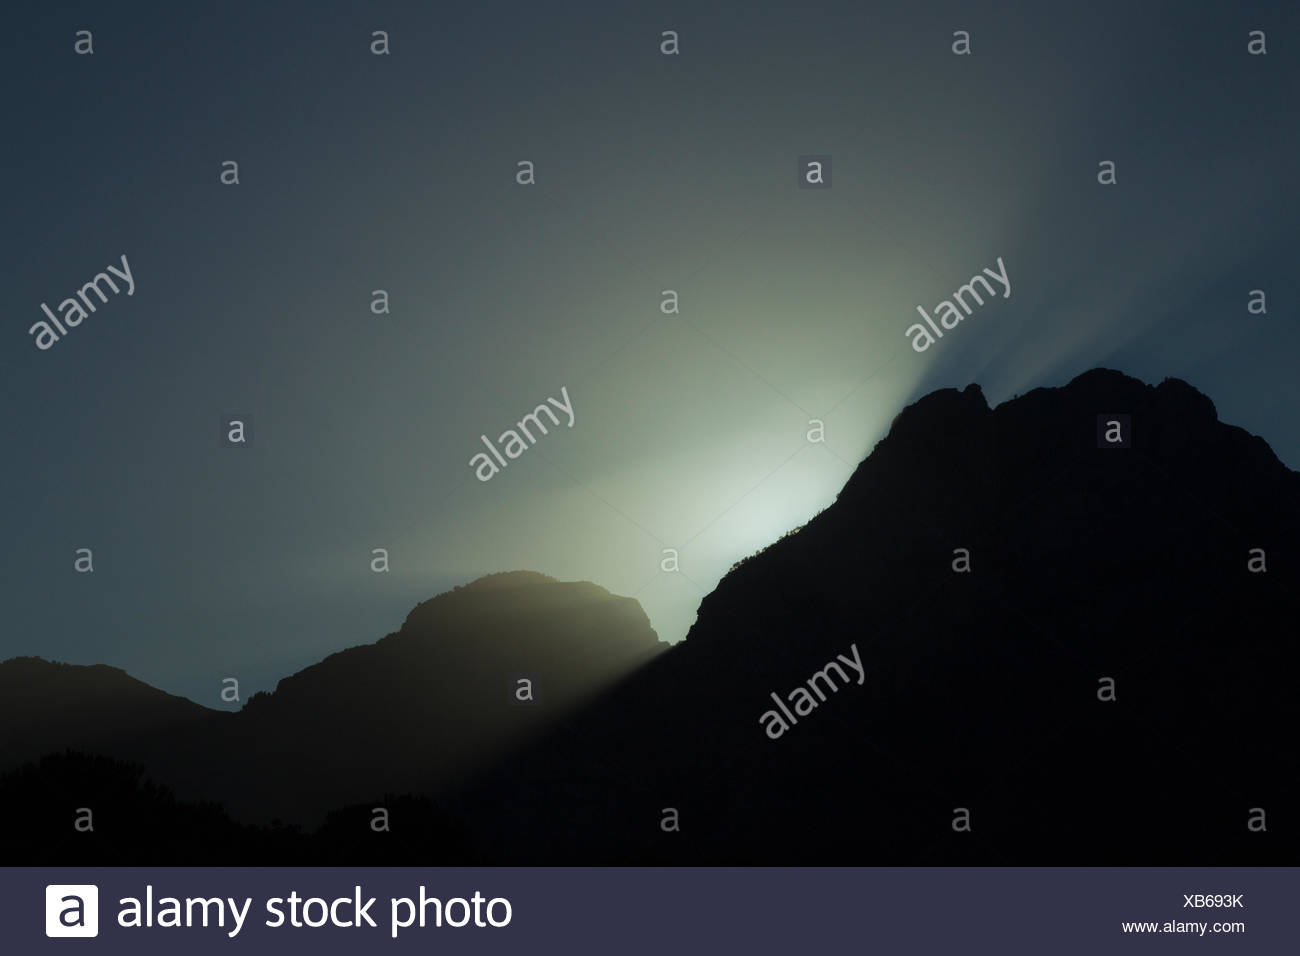 Light shines over the mountains as the sun goes down. - Stock Image